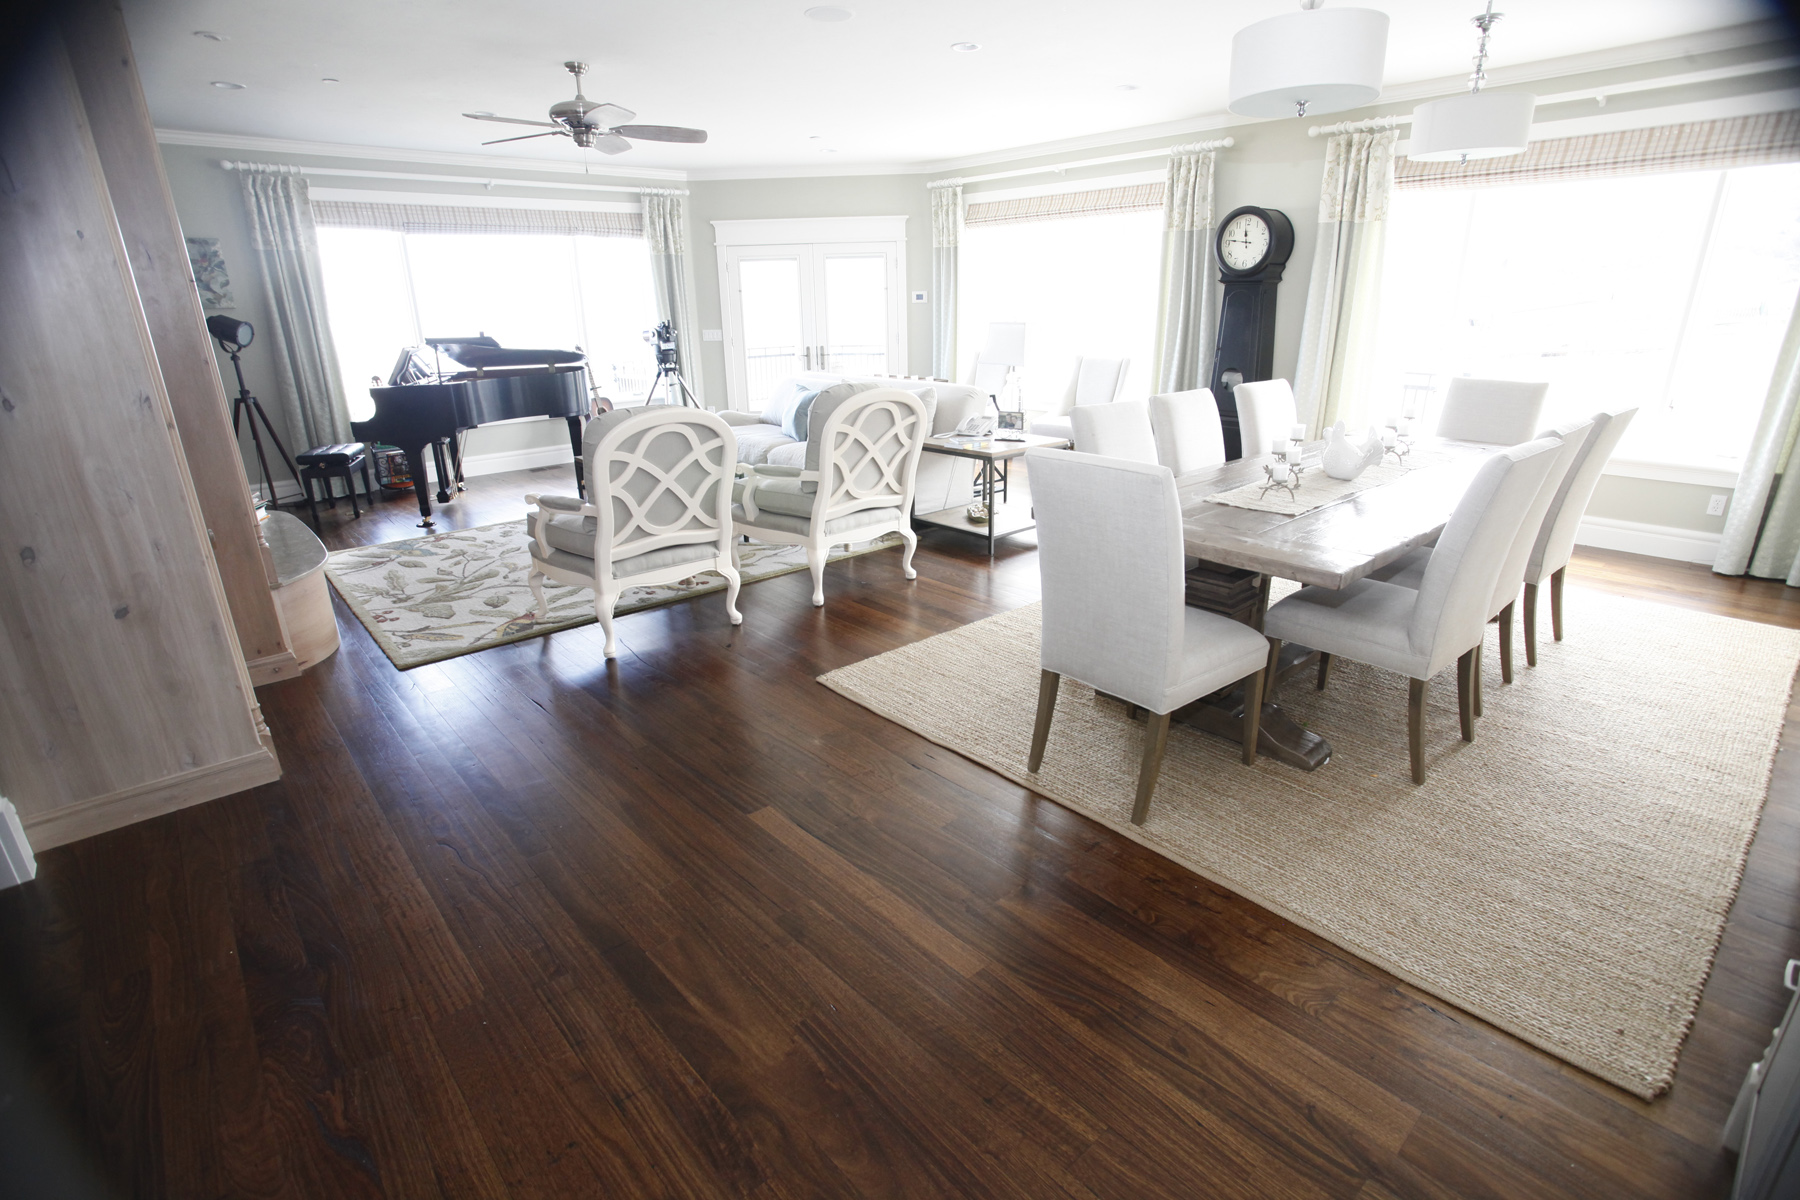 Bolefloor living room floor interior design ideas living Wood flooring ideas for living room